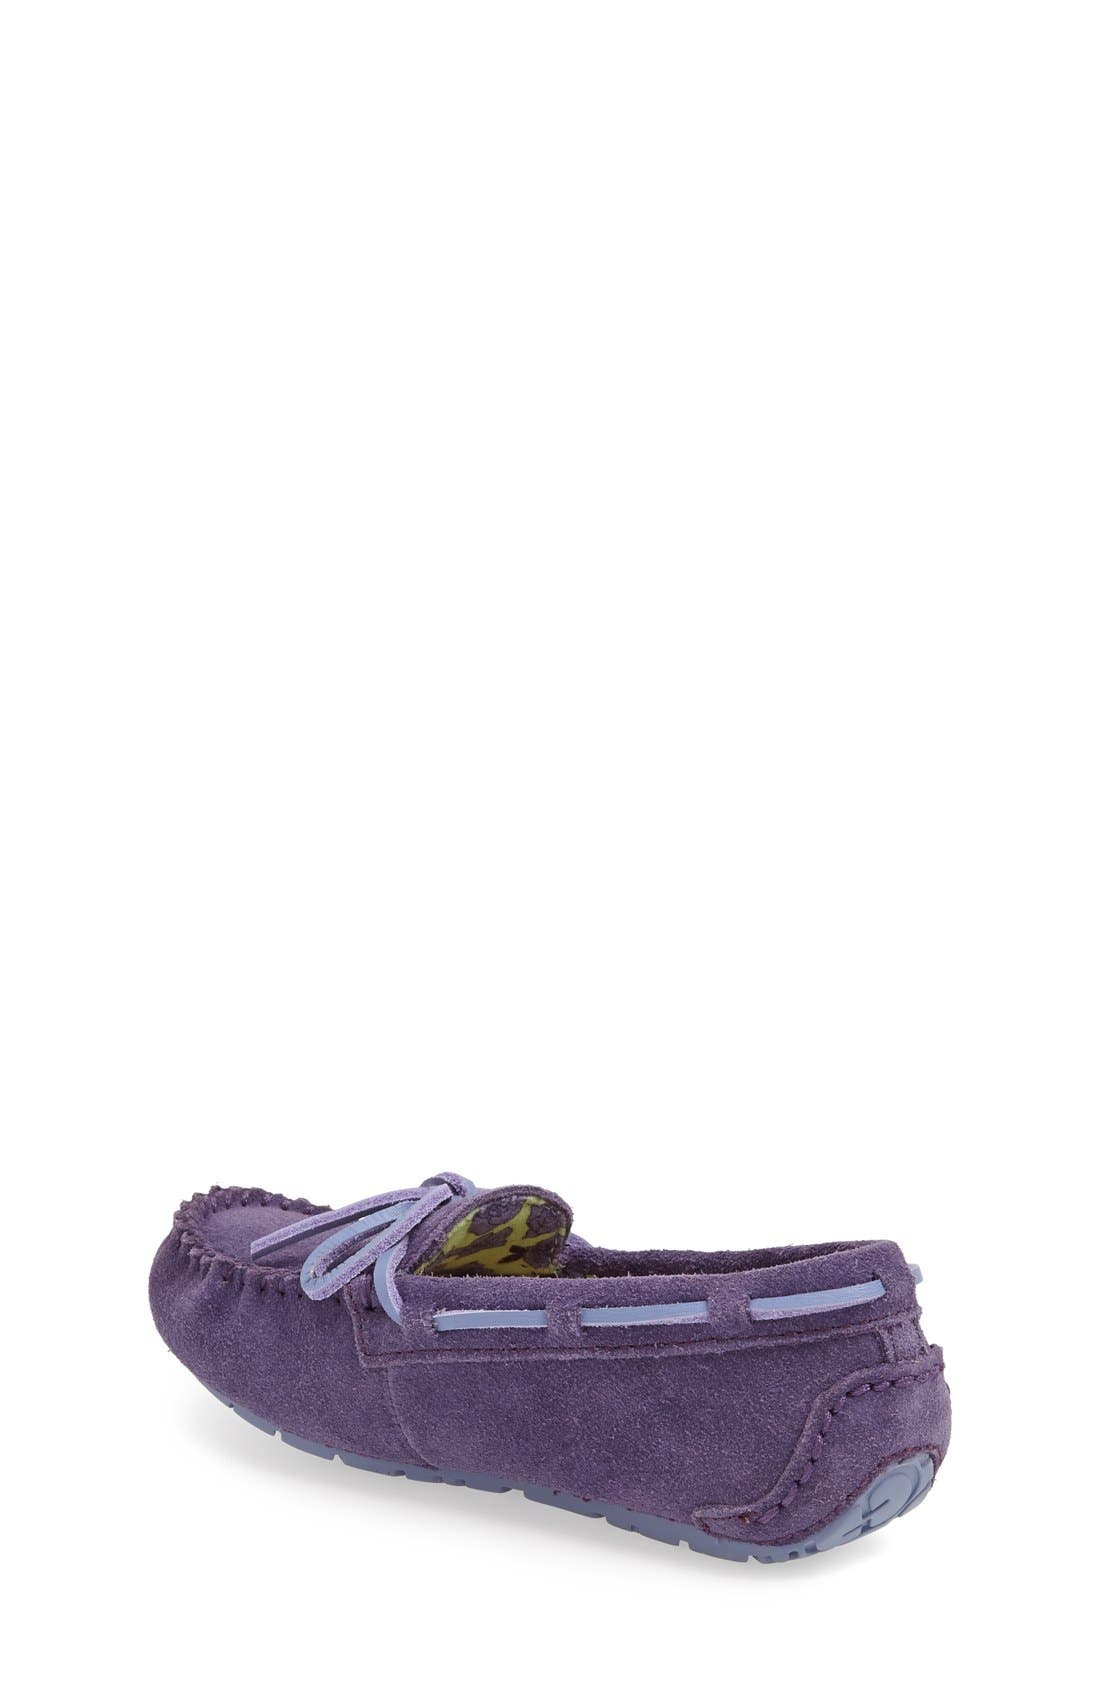 Alternate Image 2  - UGG® 'Ryder Rose' Slipper (Toddler, Little Kid & Big Kid)